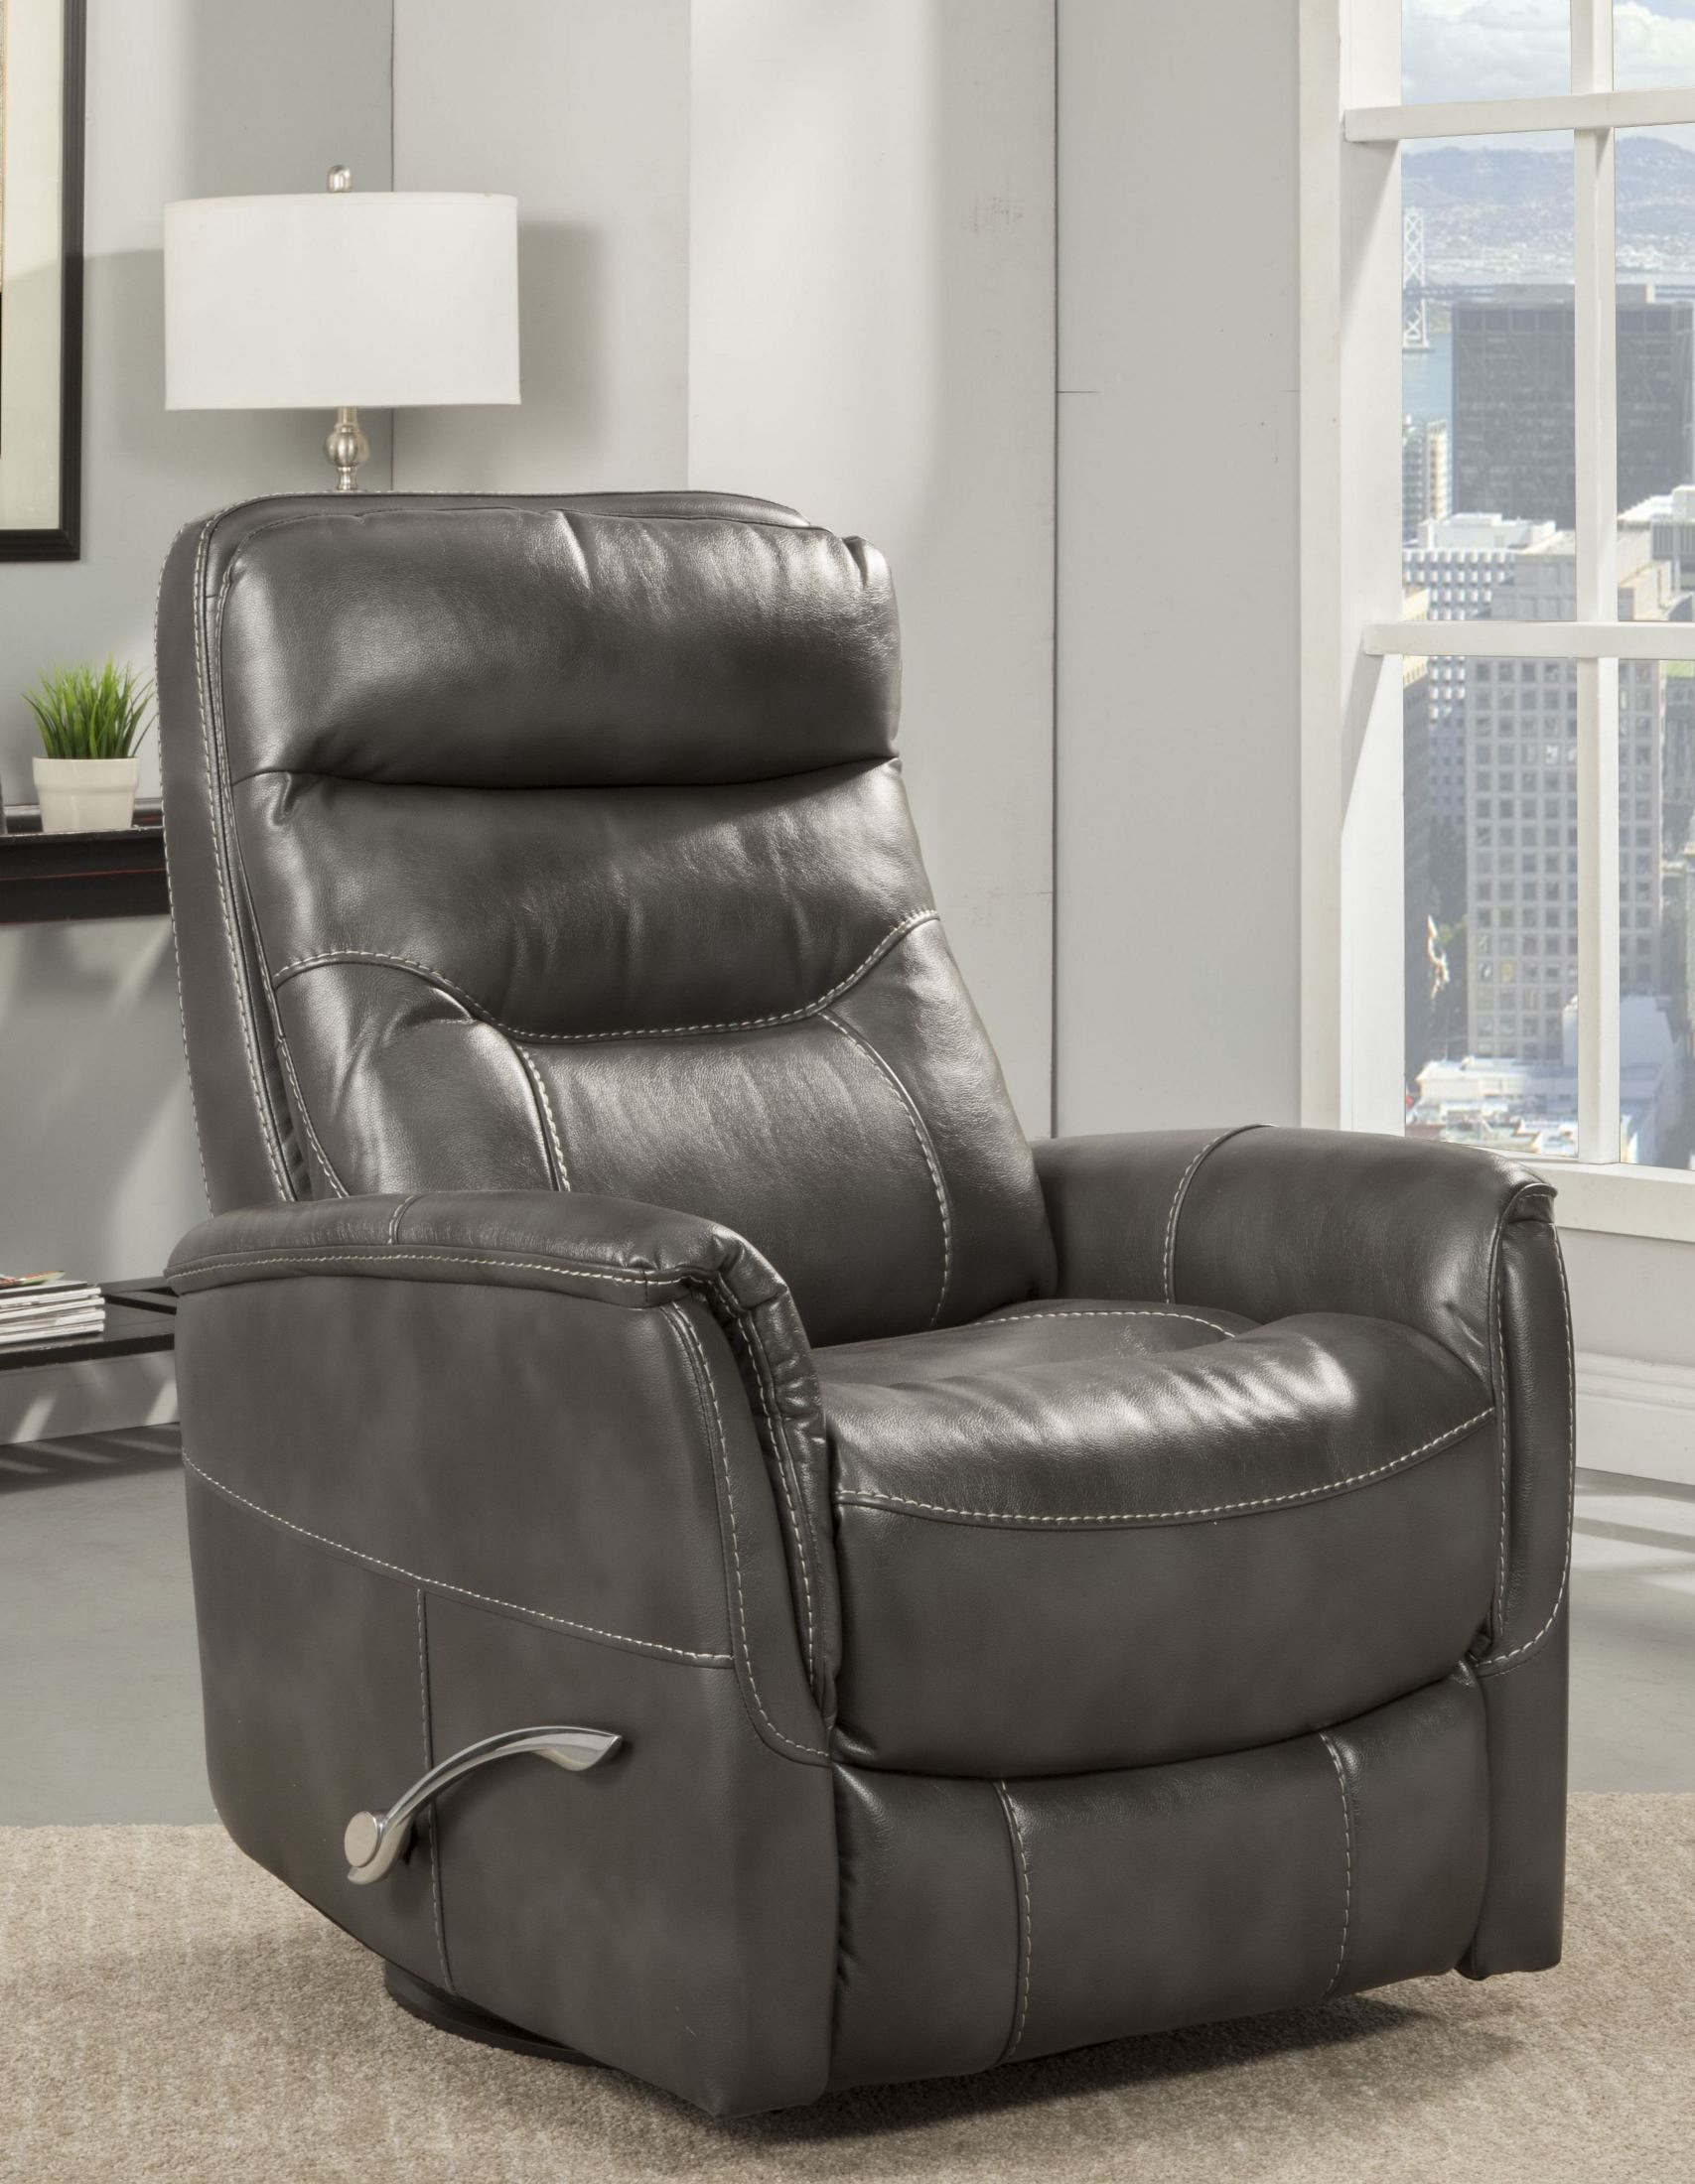 Gemini Flint Swivel Glider Recliner From Parker Living | Coleman Pertaining To Hercules Oyster Swivel Glider Recliners (Image 4 of 20)